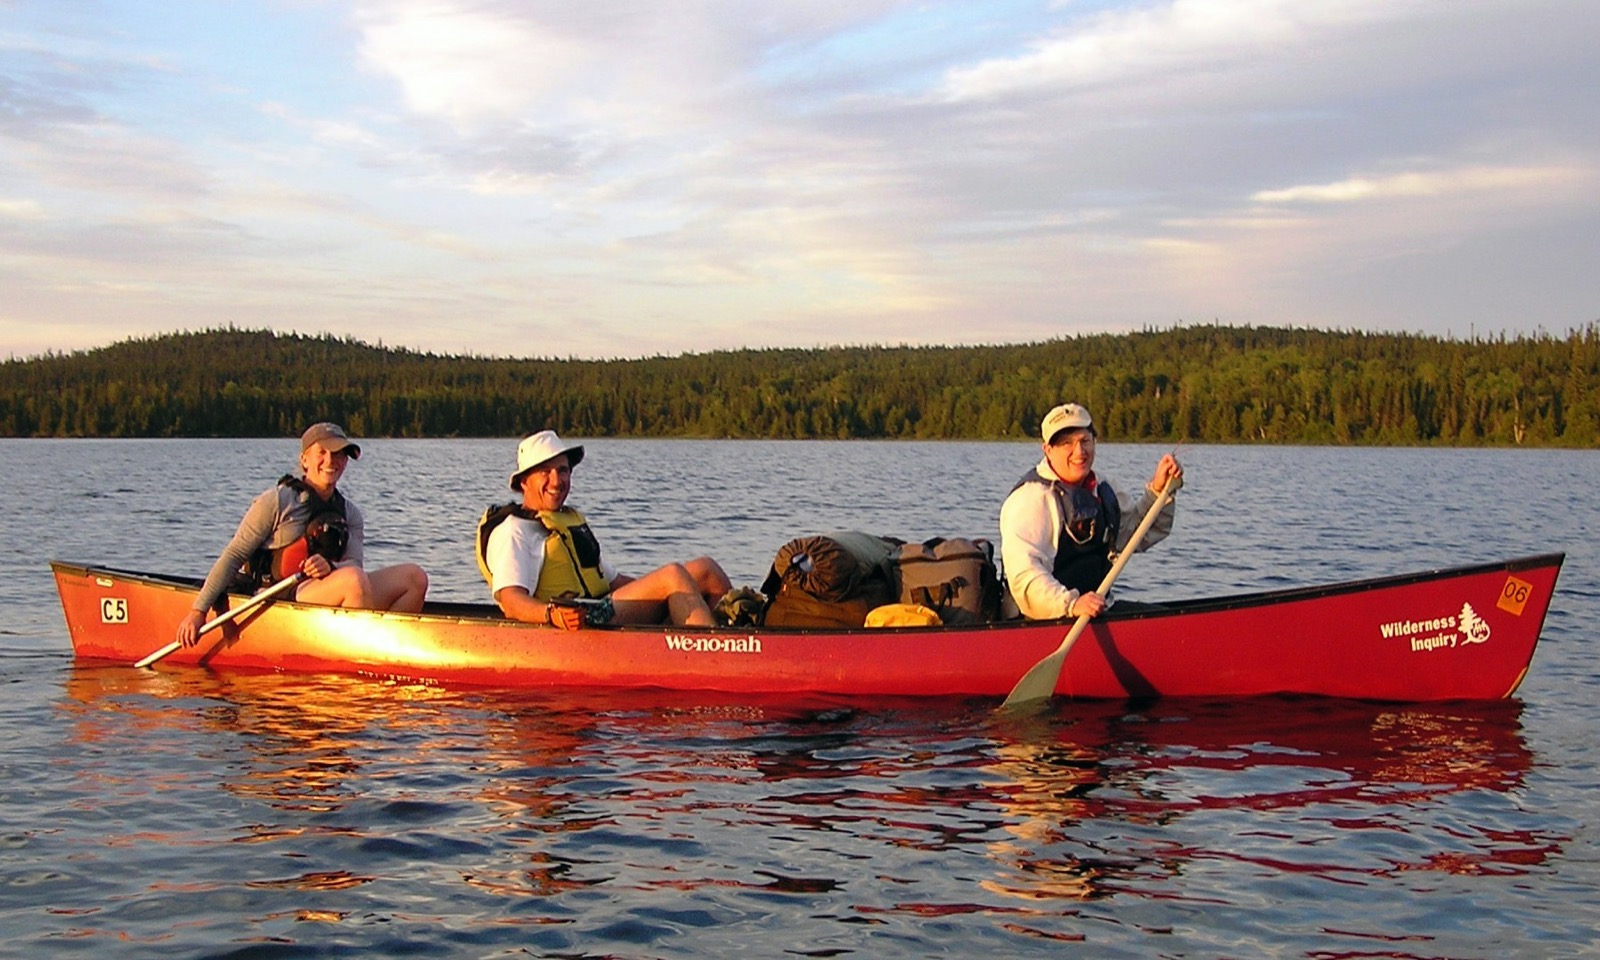 Three paddlers in a Wenonah canoe in the Wabakimi Provincial Park at dusk.